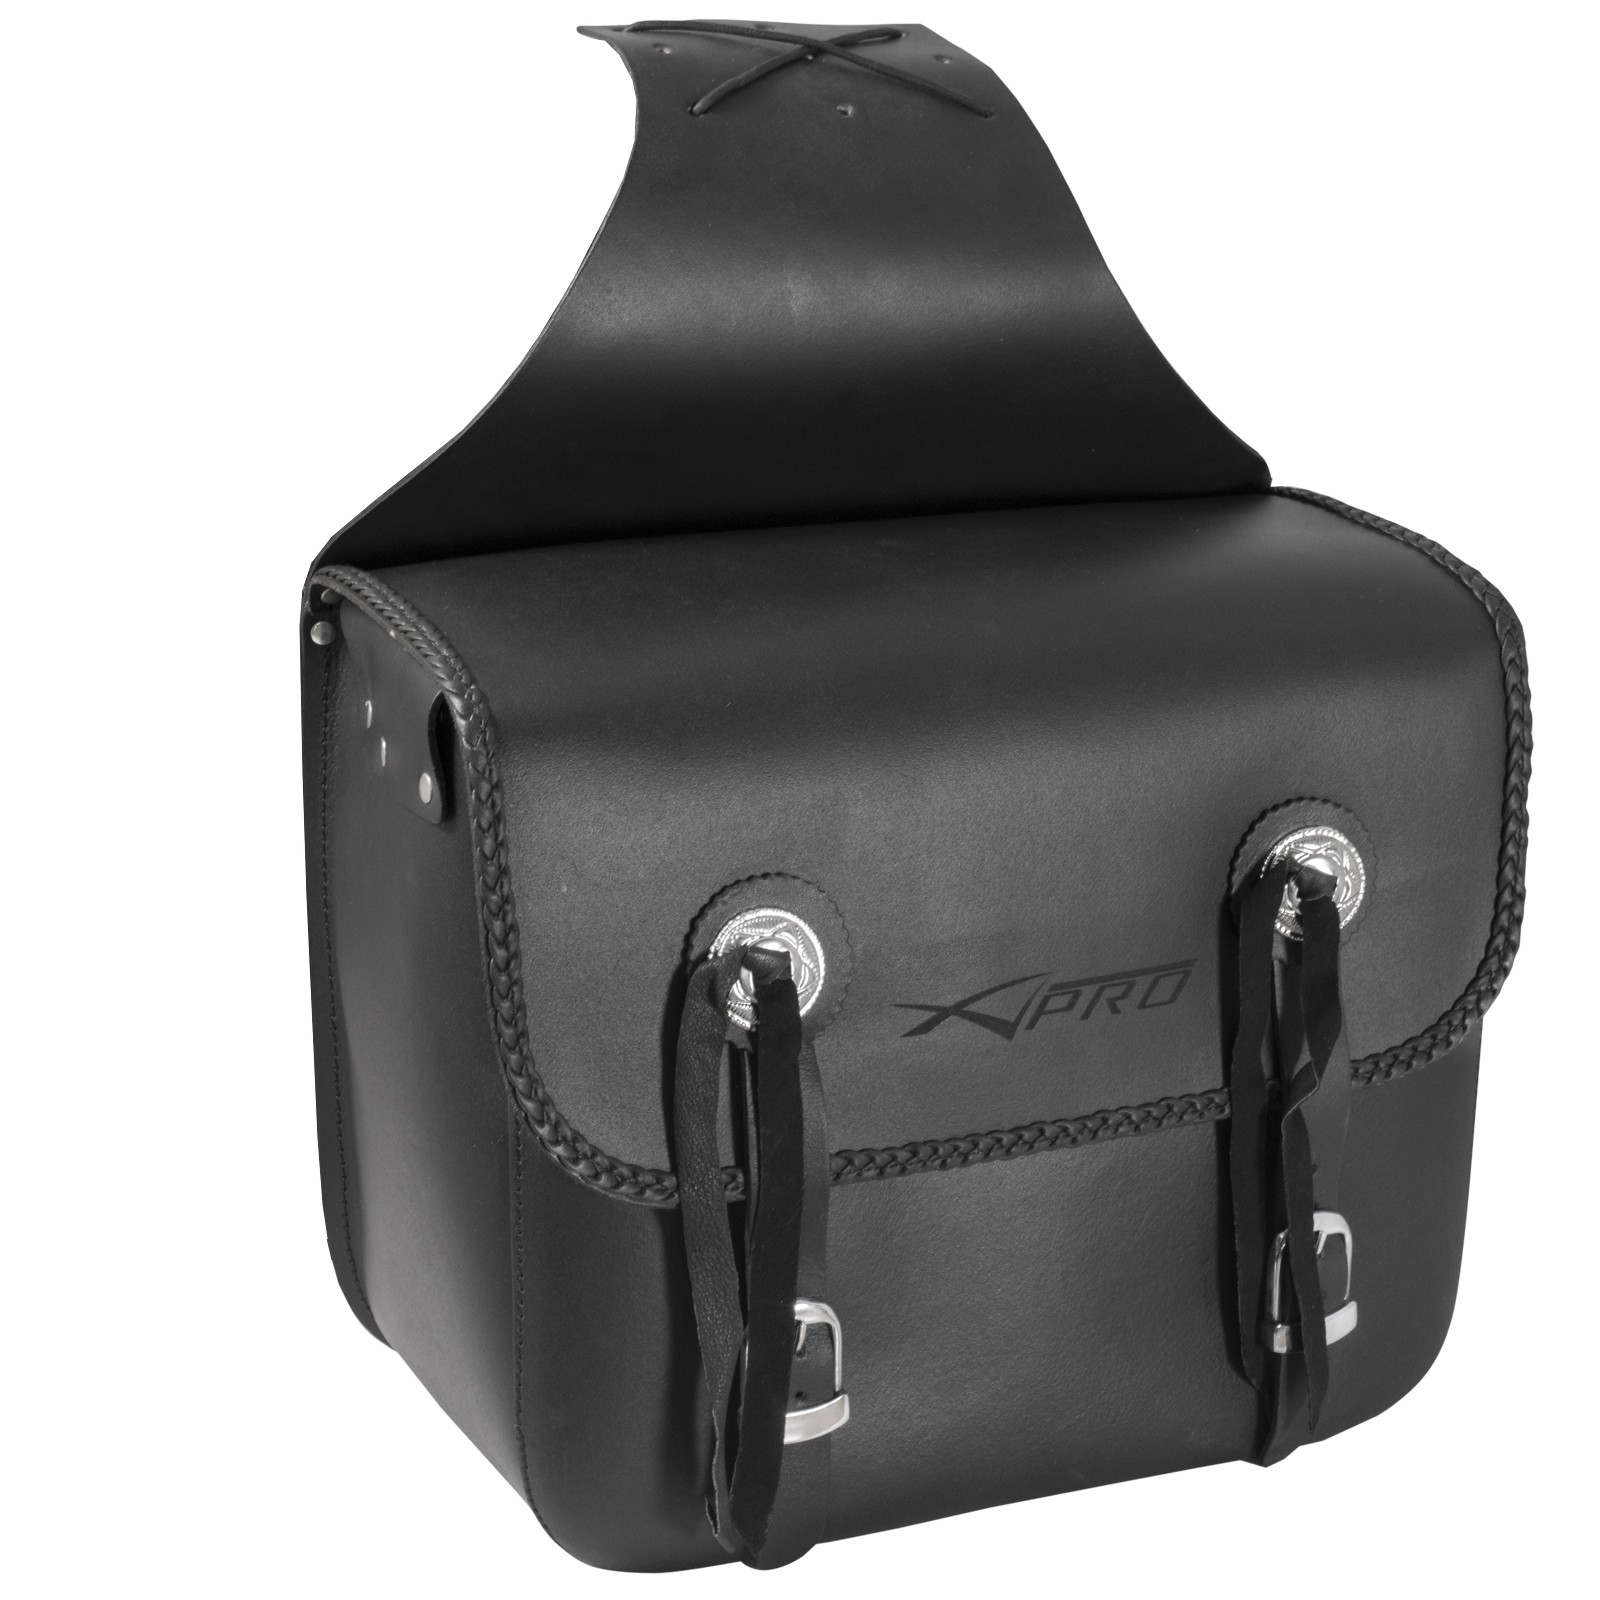 Eldorado-A-Pro-Borsa-Bag-Nero-Black-Pelle-Leather-Sonic-Moto_Mono